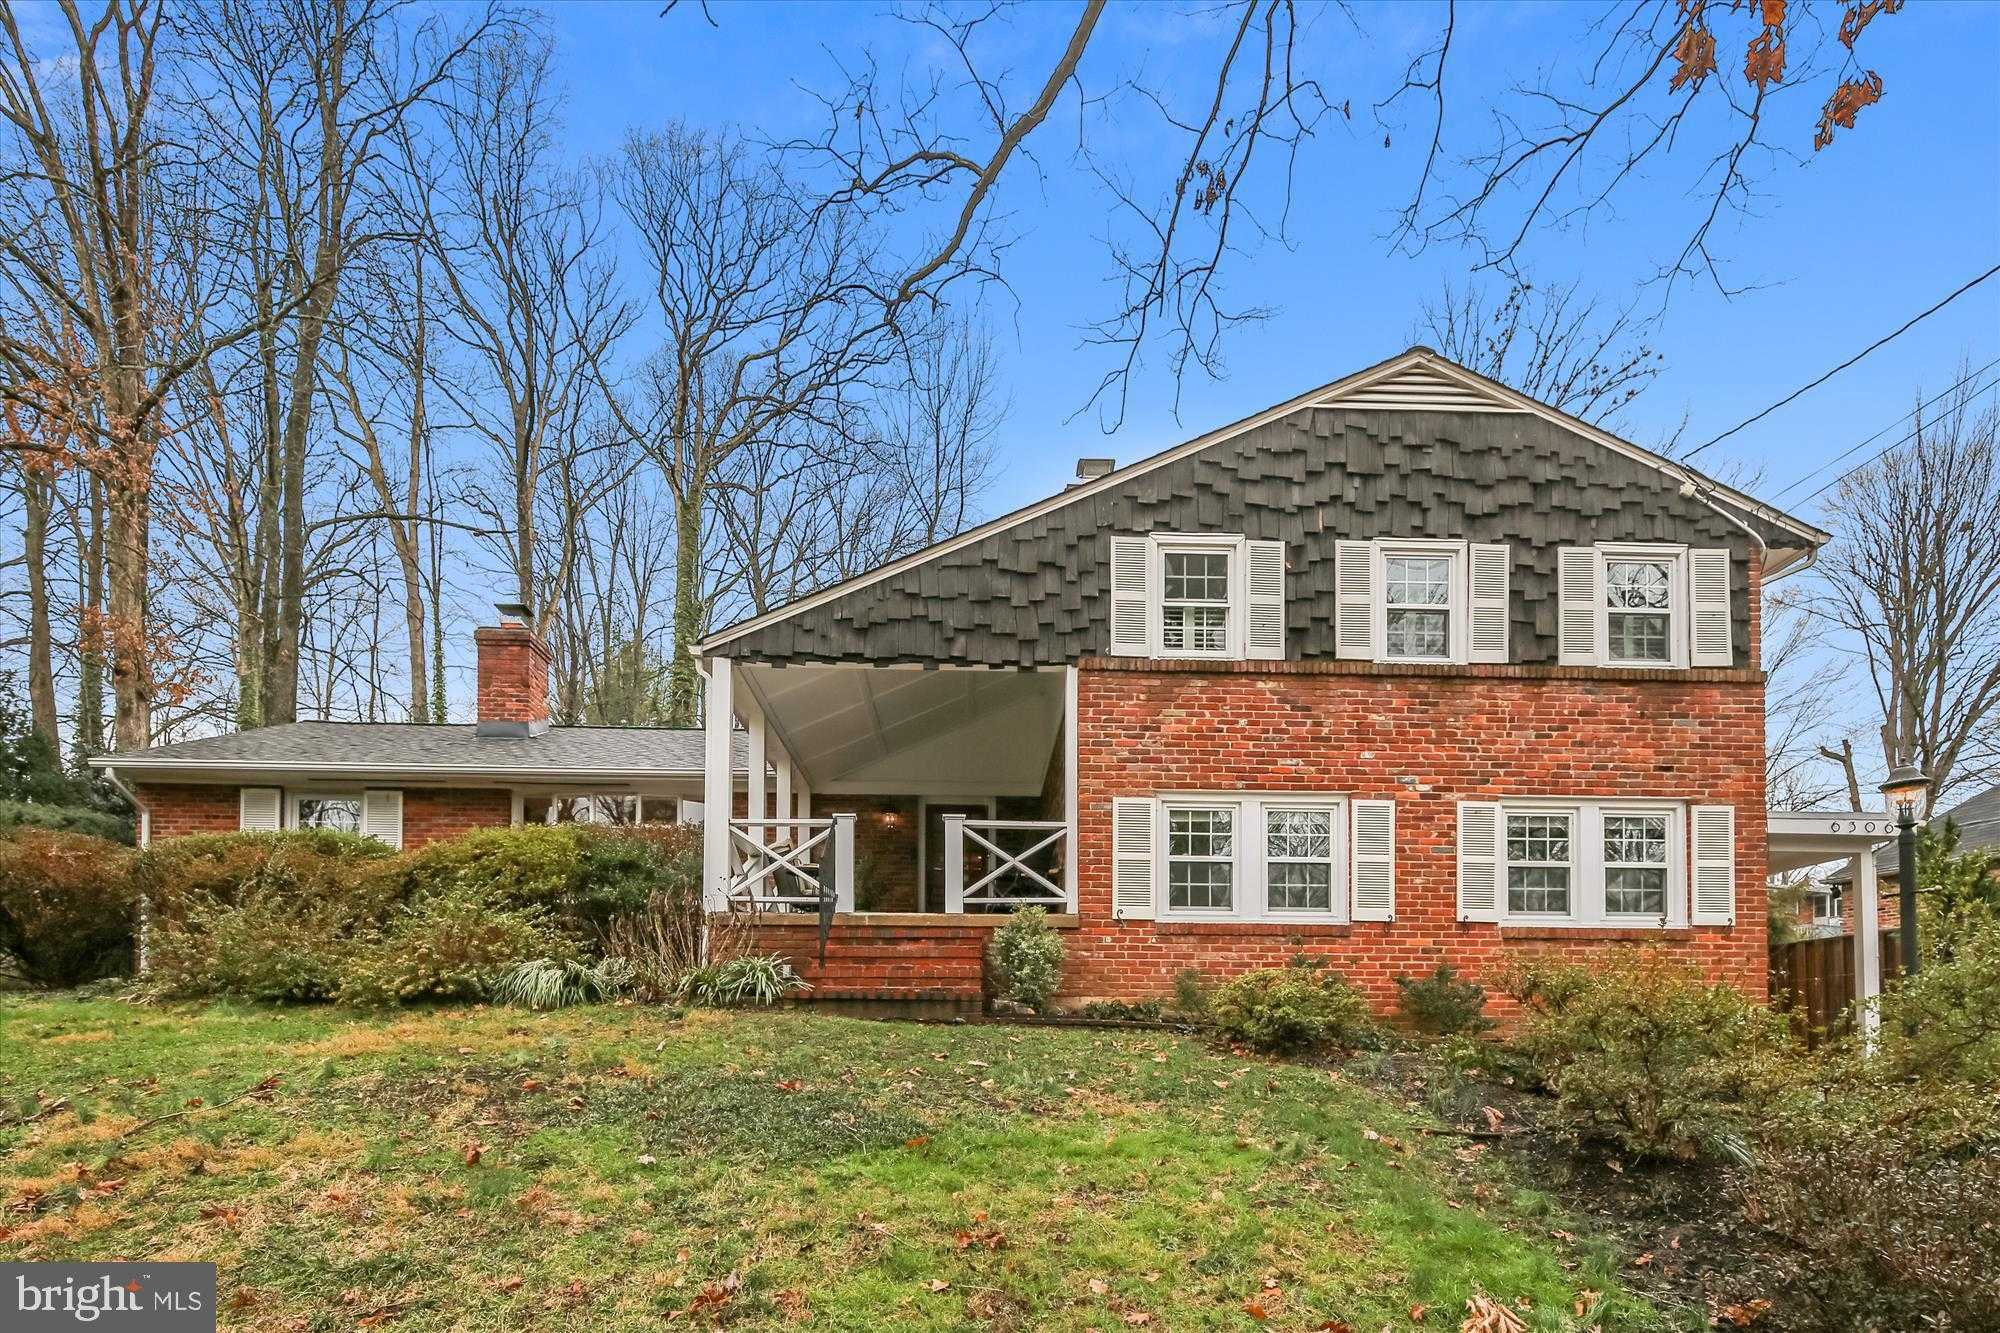 $924,000 - 4Br/3Ba -  for Sale in Lake Barcroft, Falls Church